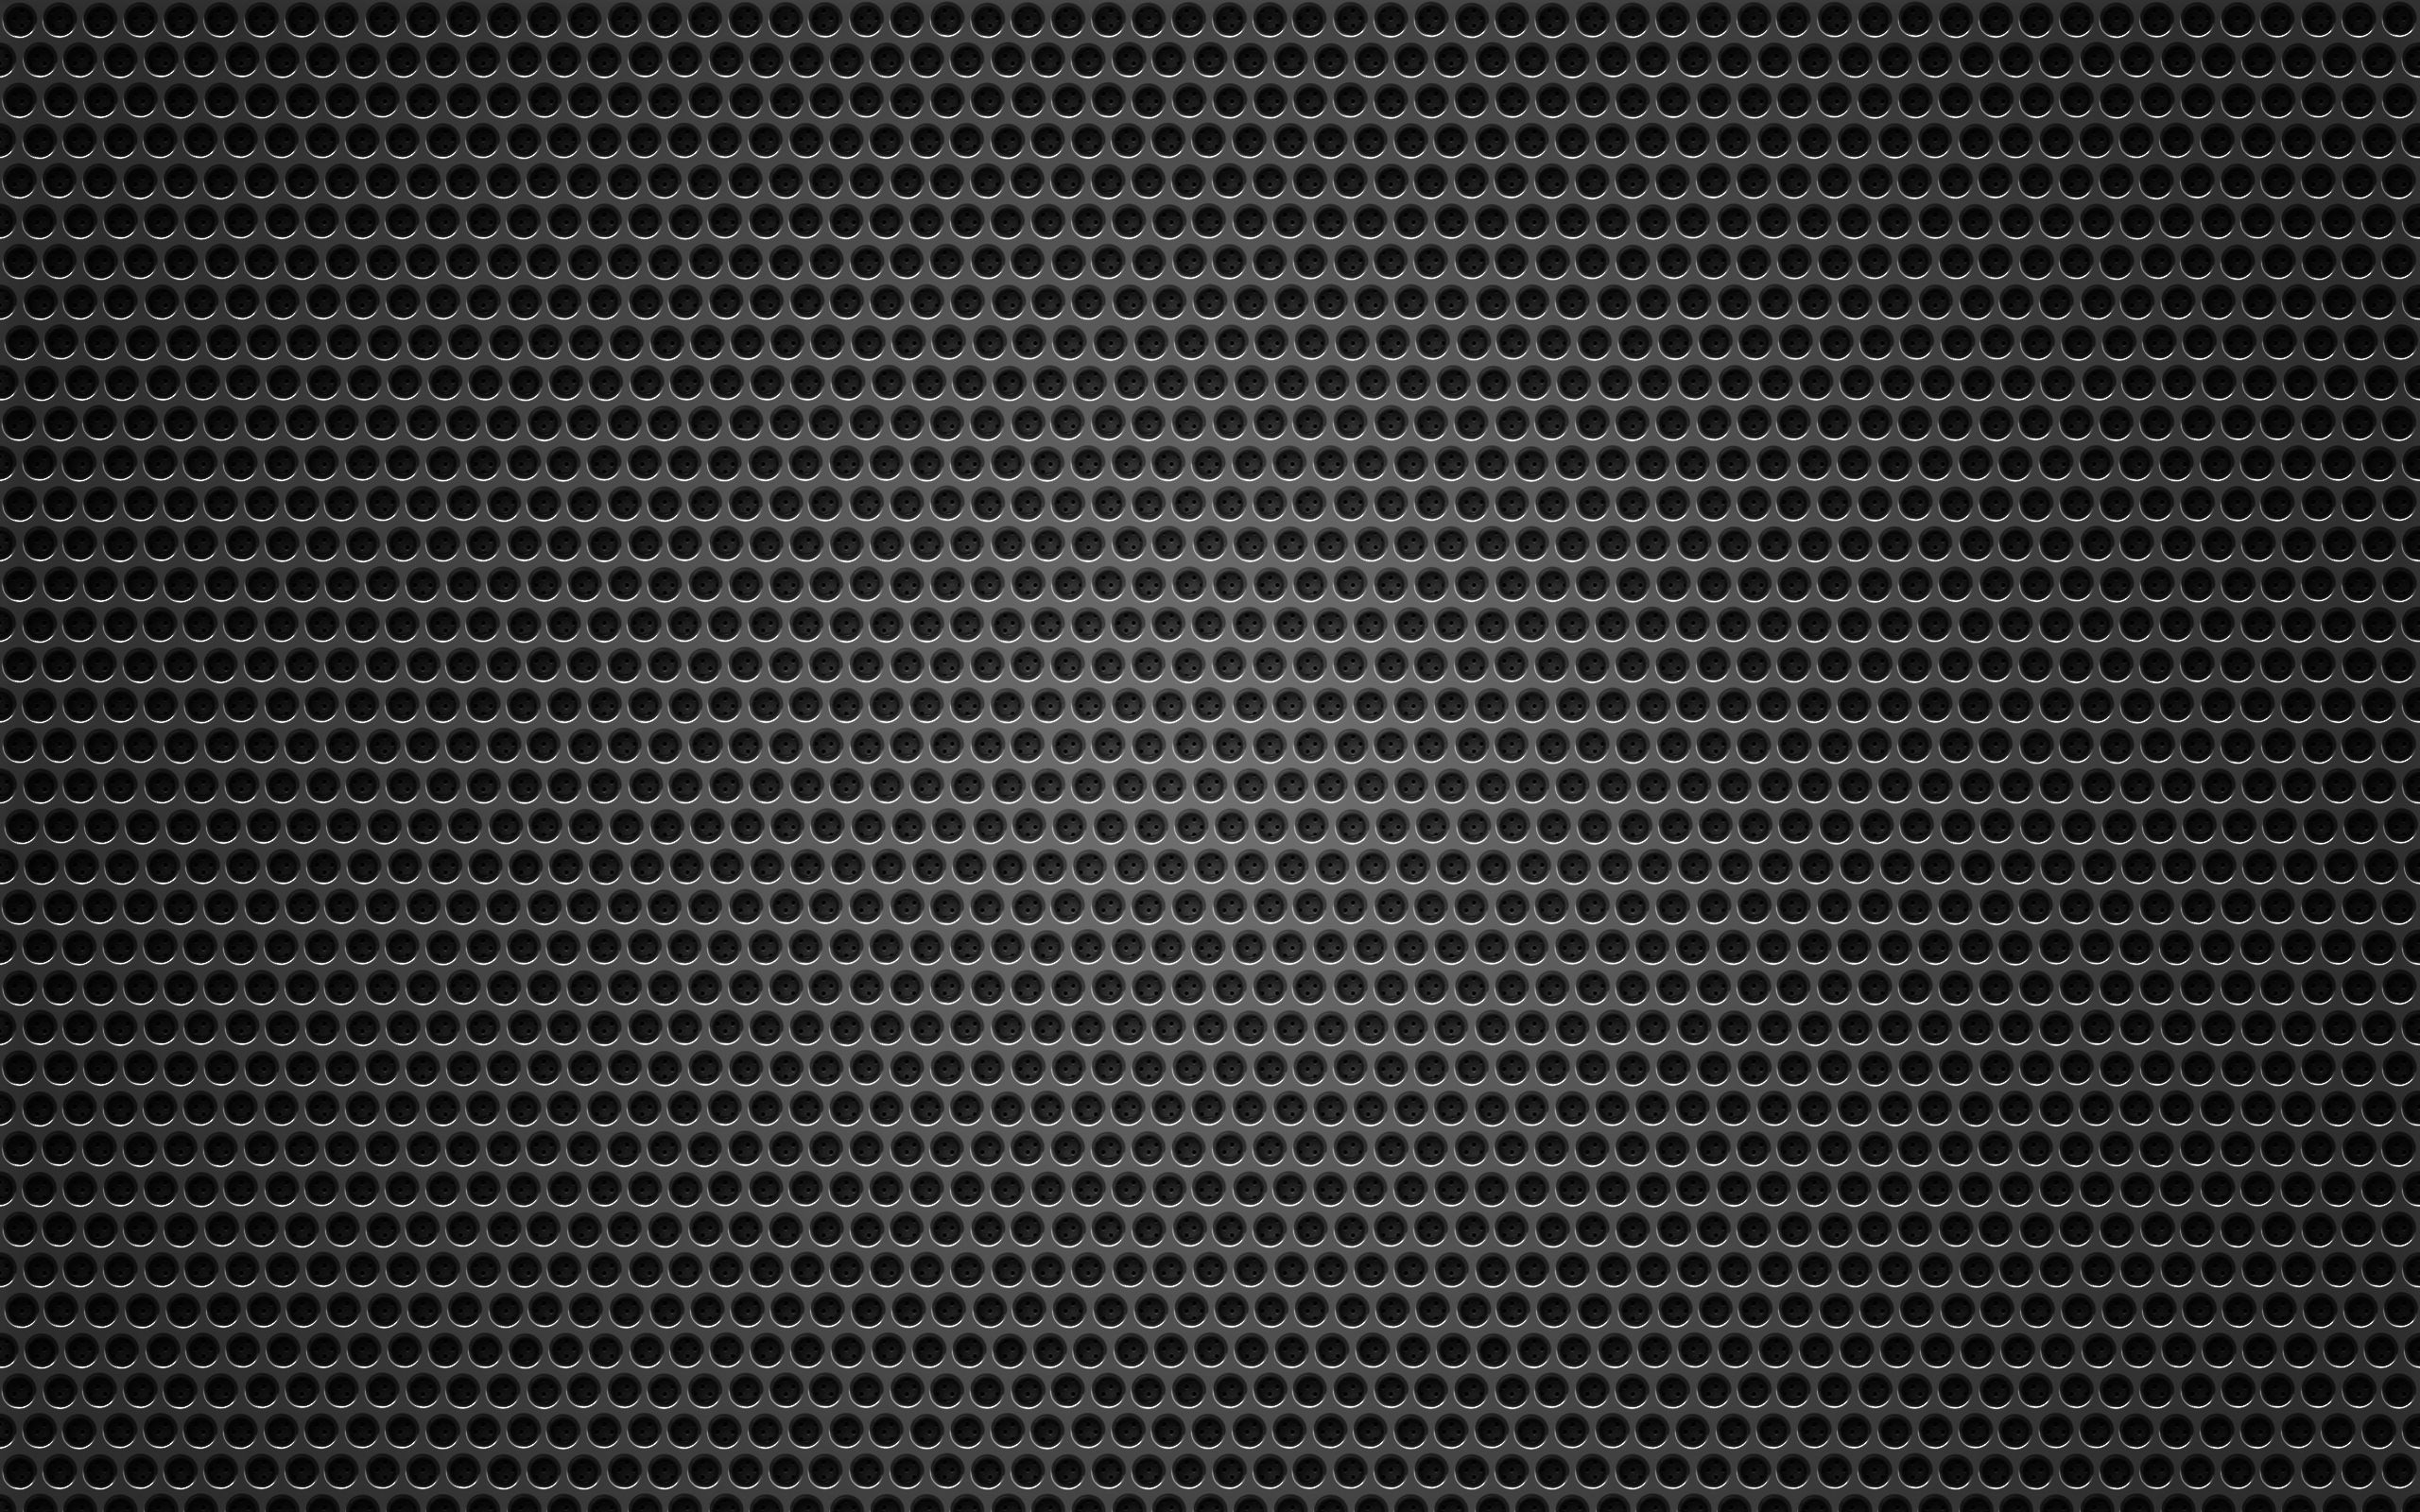 Blackpattern10jpg 25601600 Carbon Fiber TEXTURES